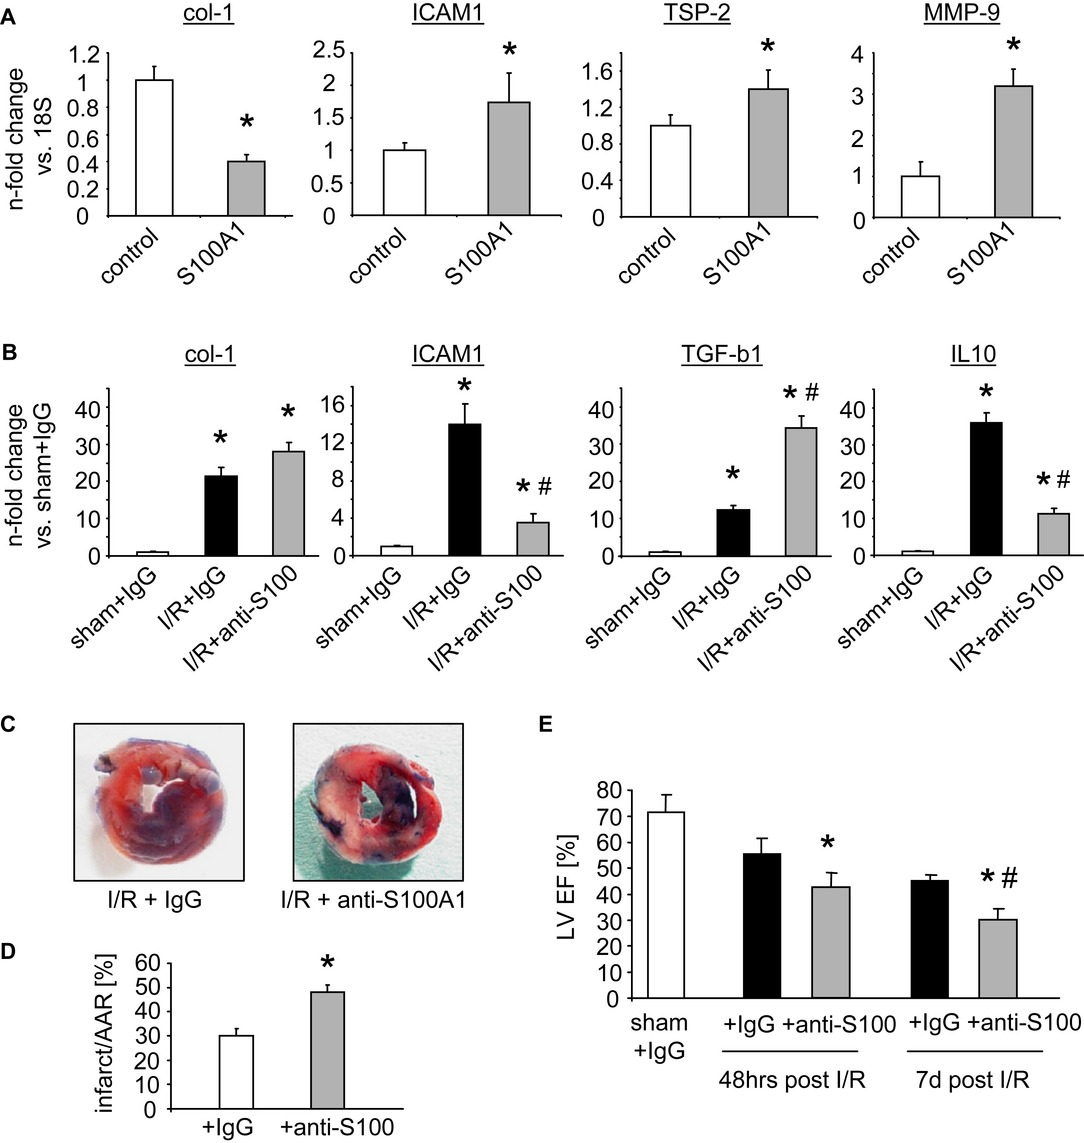 S100A1 is released from ischemic cardiomyocytes and